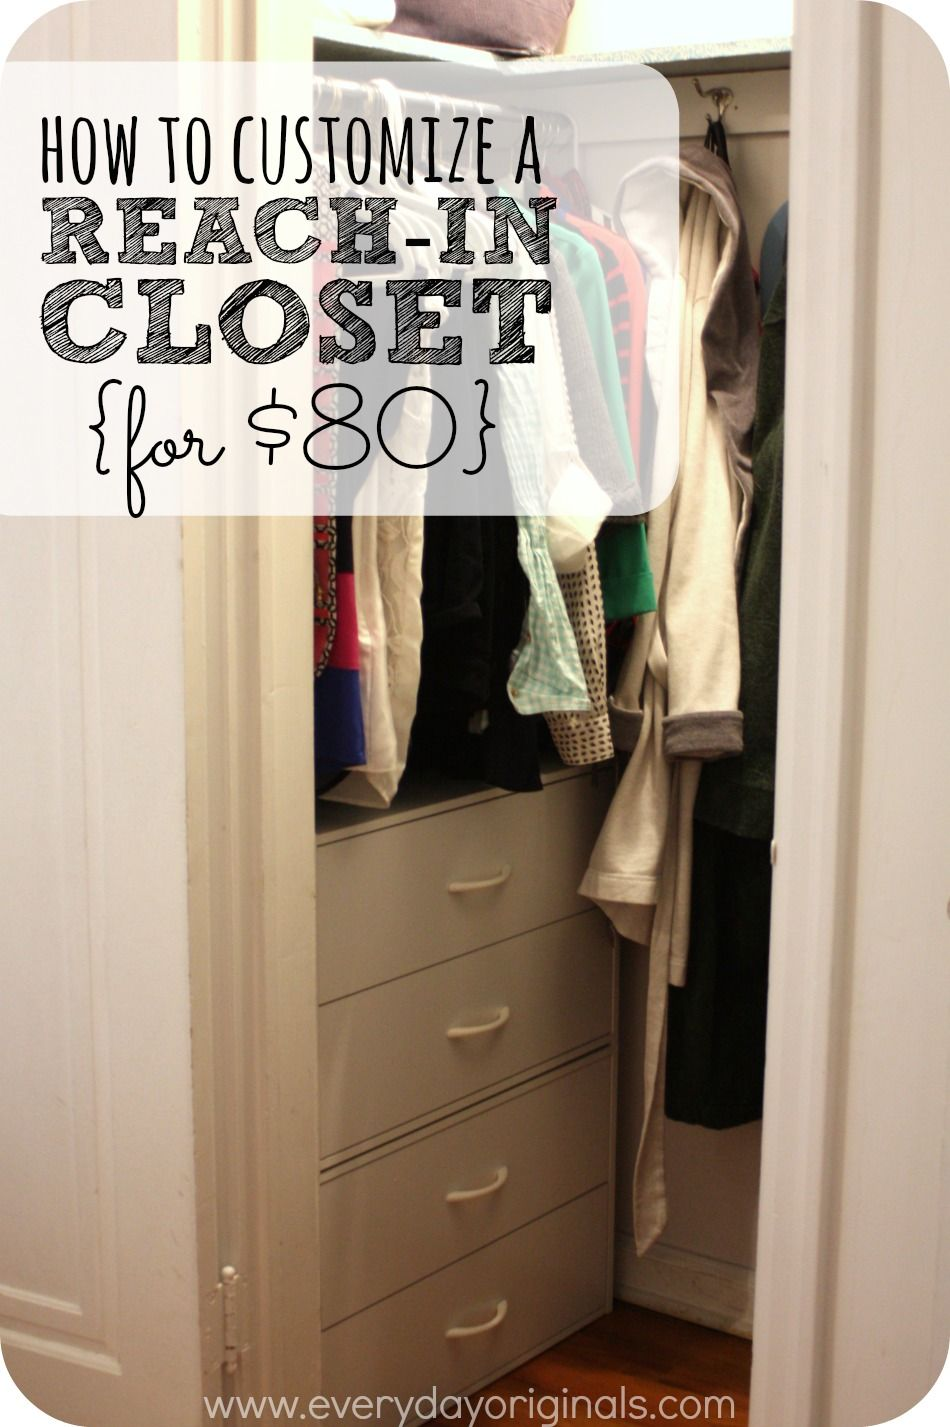 How To Customize A Reach In Closet For 80 Small Deep Closet